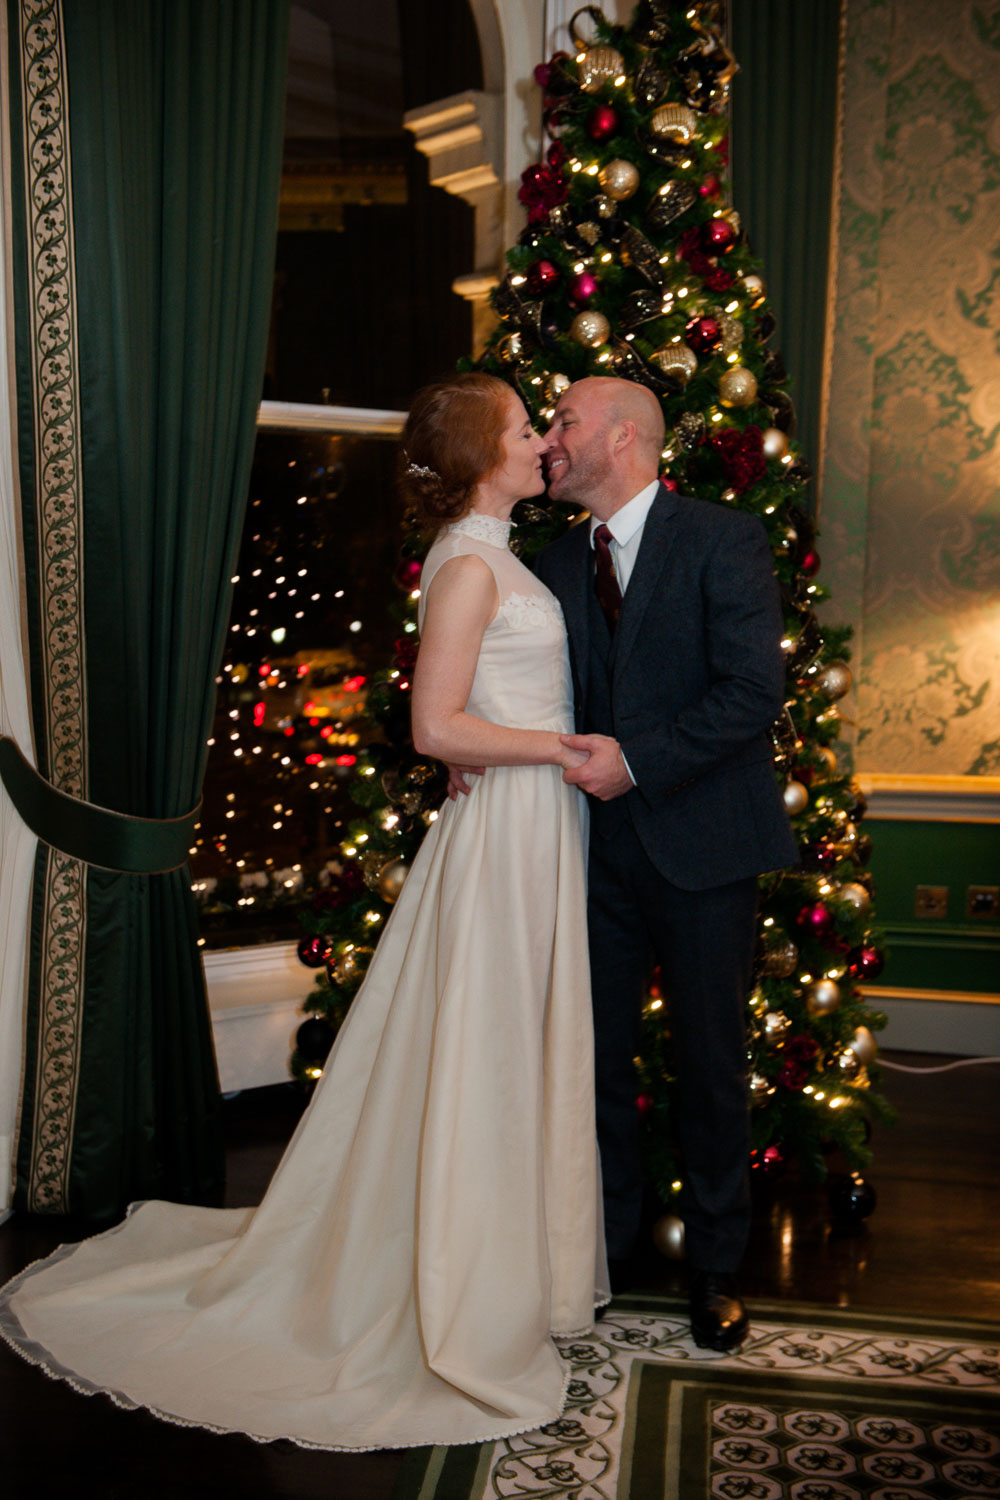 The bride and groom photographed at the Christmas Tree during their Shelbourne Hotel Christmas Wedding